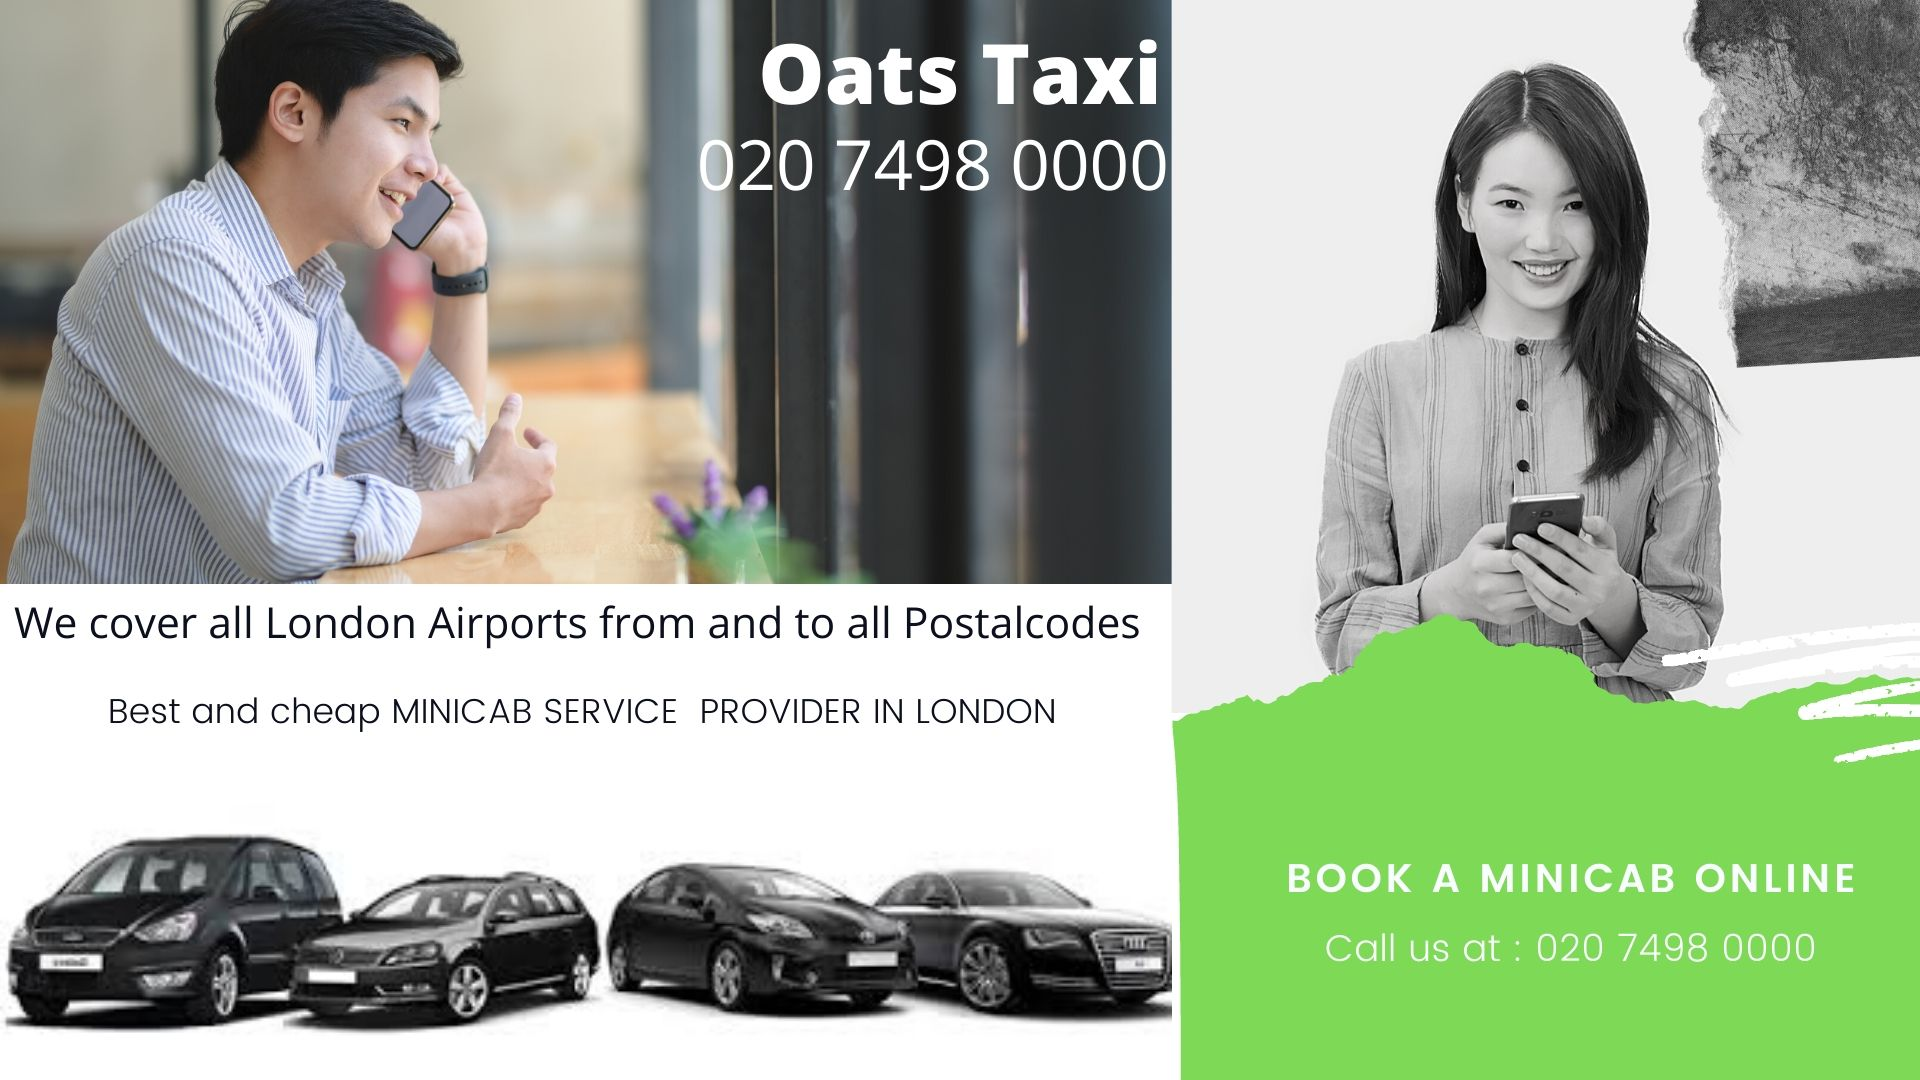 Nearest Taxi Office in Covent Garden | Nearest Taxi Office in Gatwick Airport | Call now : 02074980000